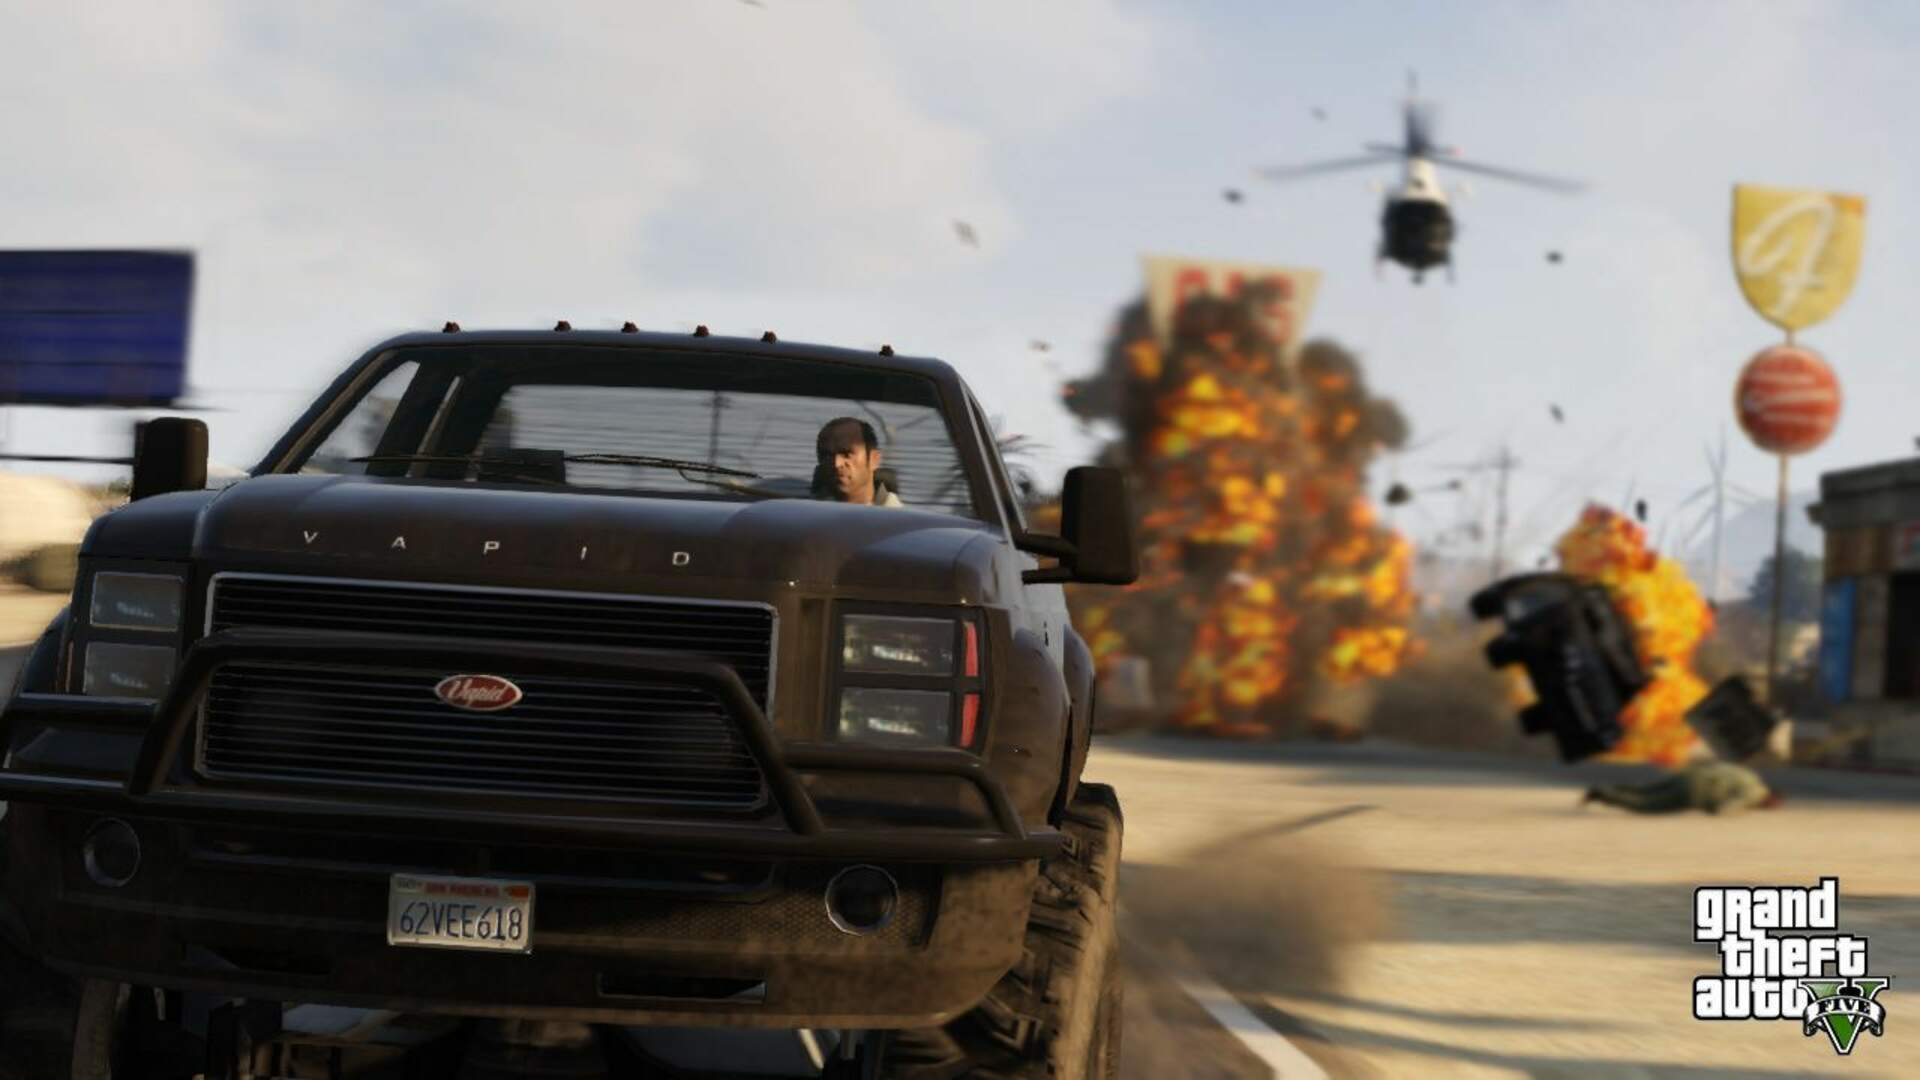 AI Researchers Are Using Grand Theft Auto V to Teach Smart Cars